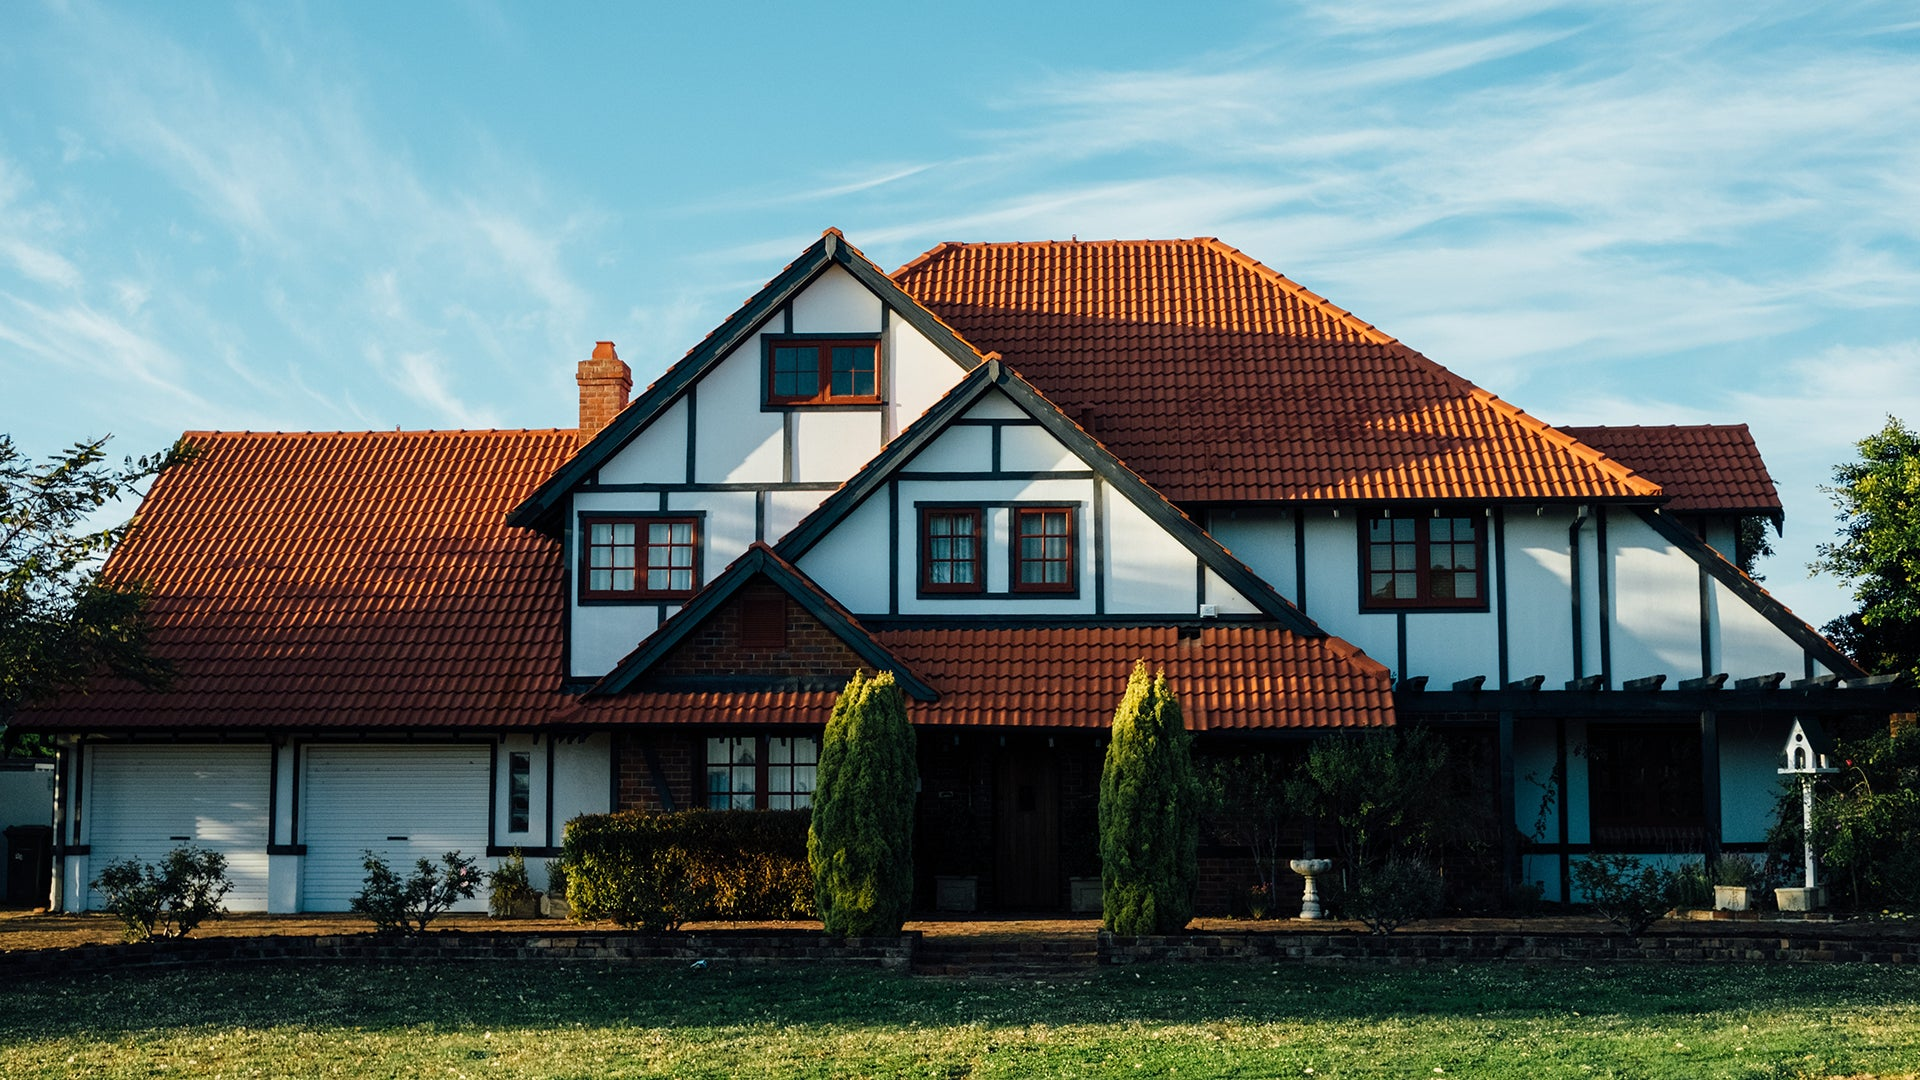 How to Sell Houses with the Help of Custom Promotional Products